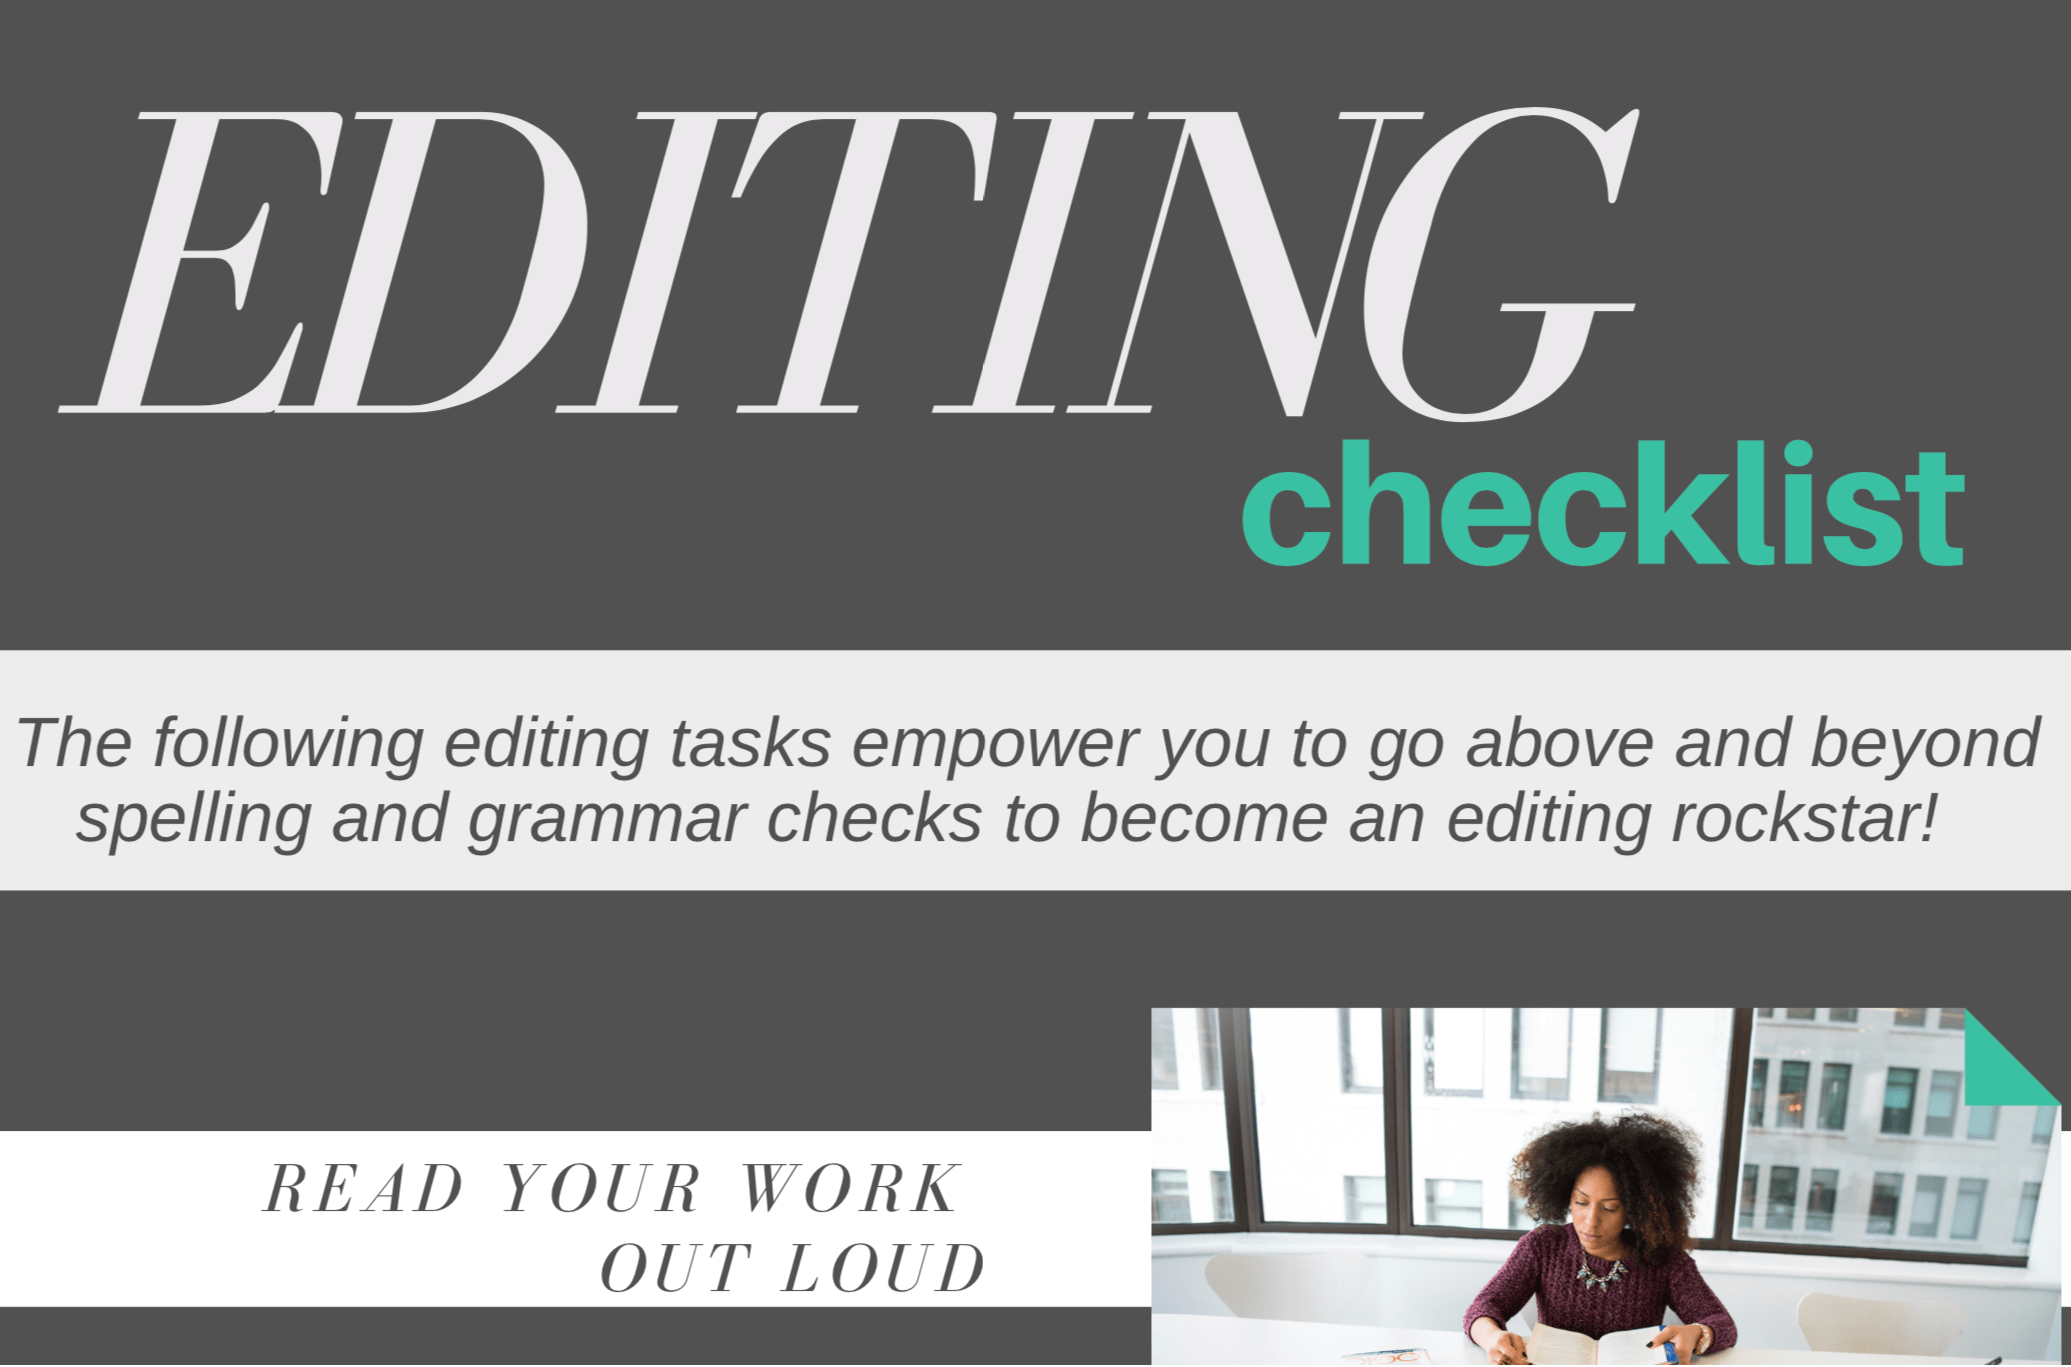 quick editing checklist